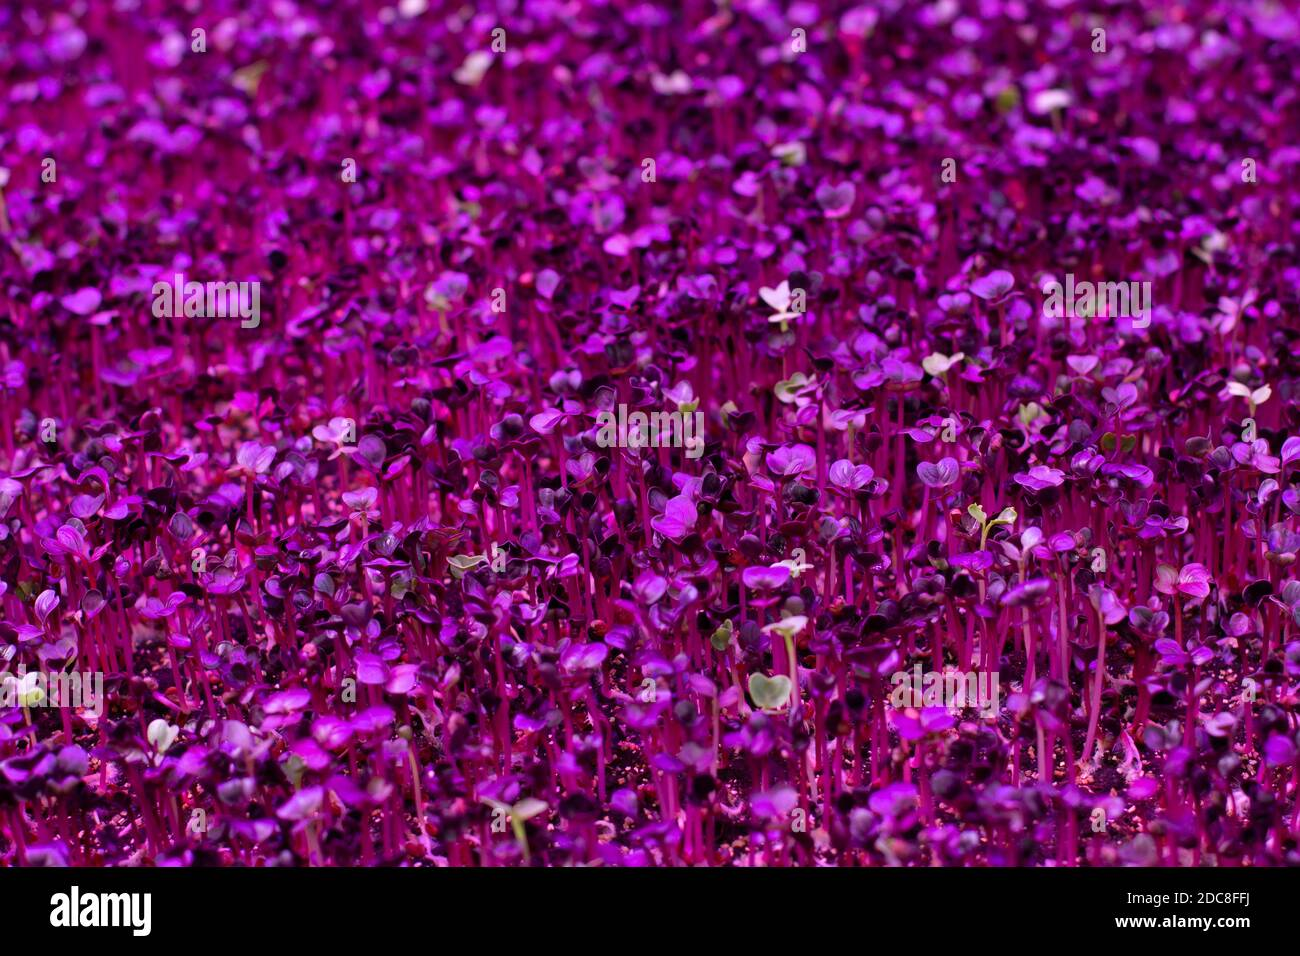 Sprouts of germinated plant seeds under the light of a purple phytolamp, ice lighting for indoor plants. Purple pink background Stock Photo